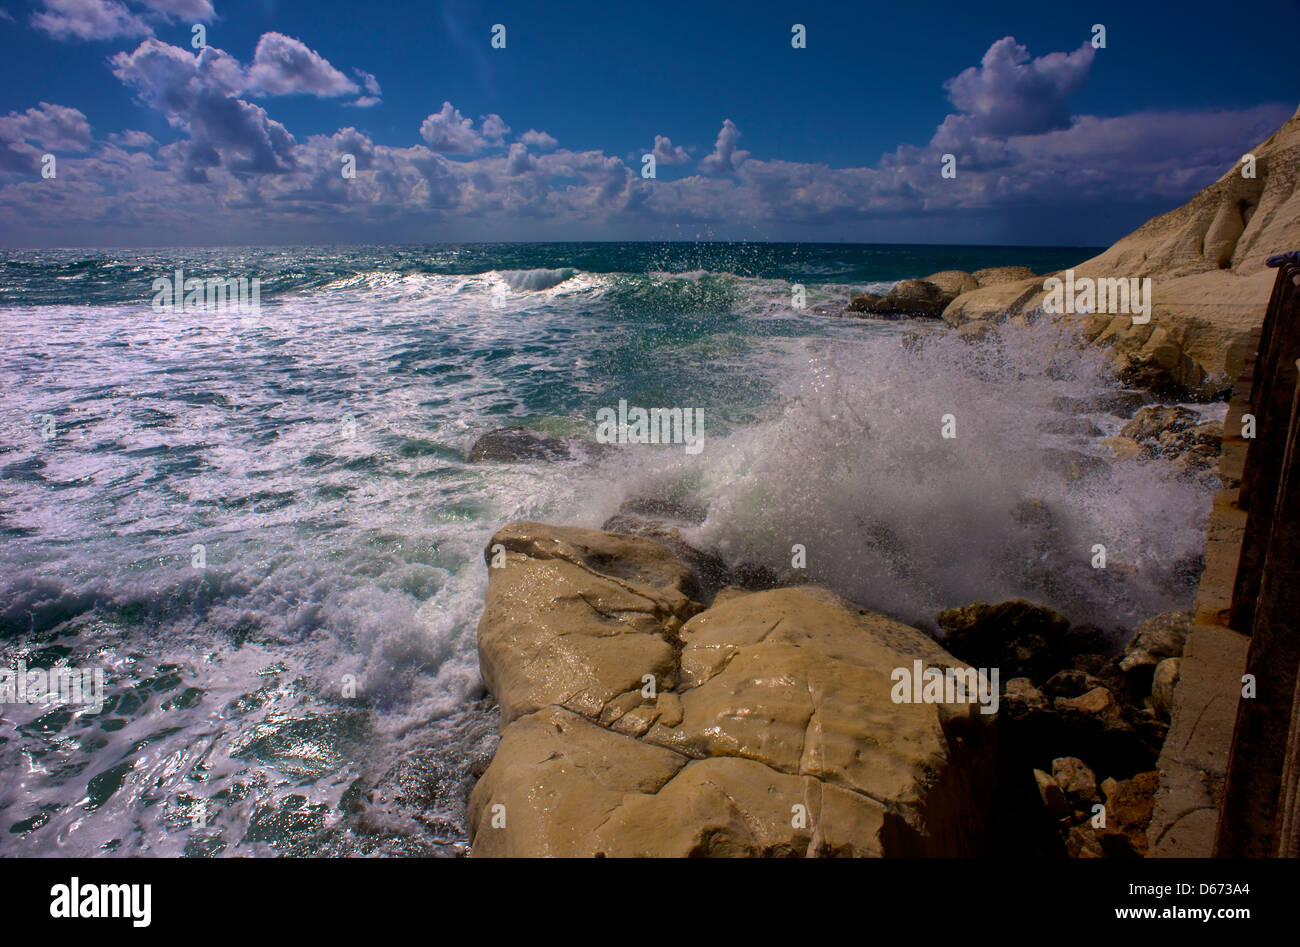 Crashing Waves at The Rosh HaNikra Grottos, Western Galilee, Israel - Stock Image